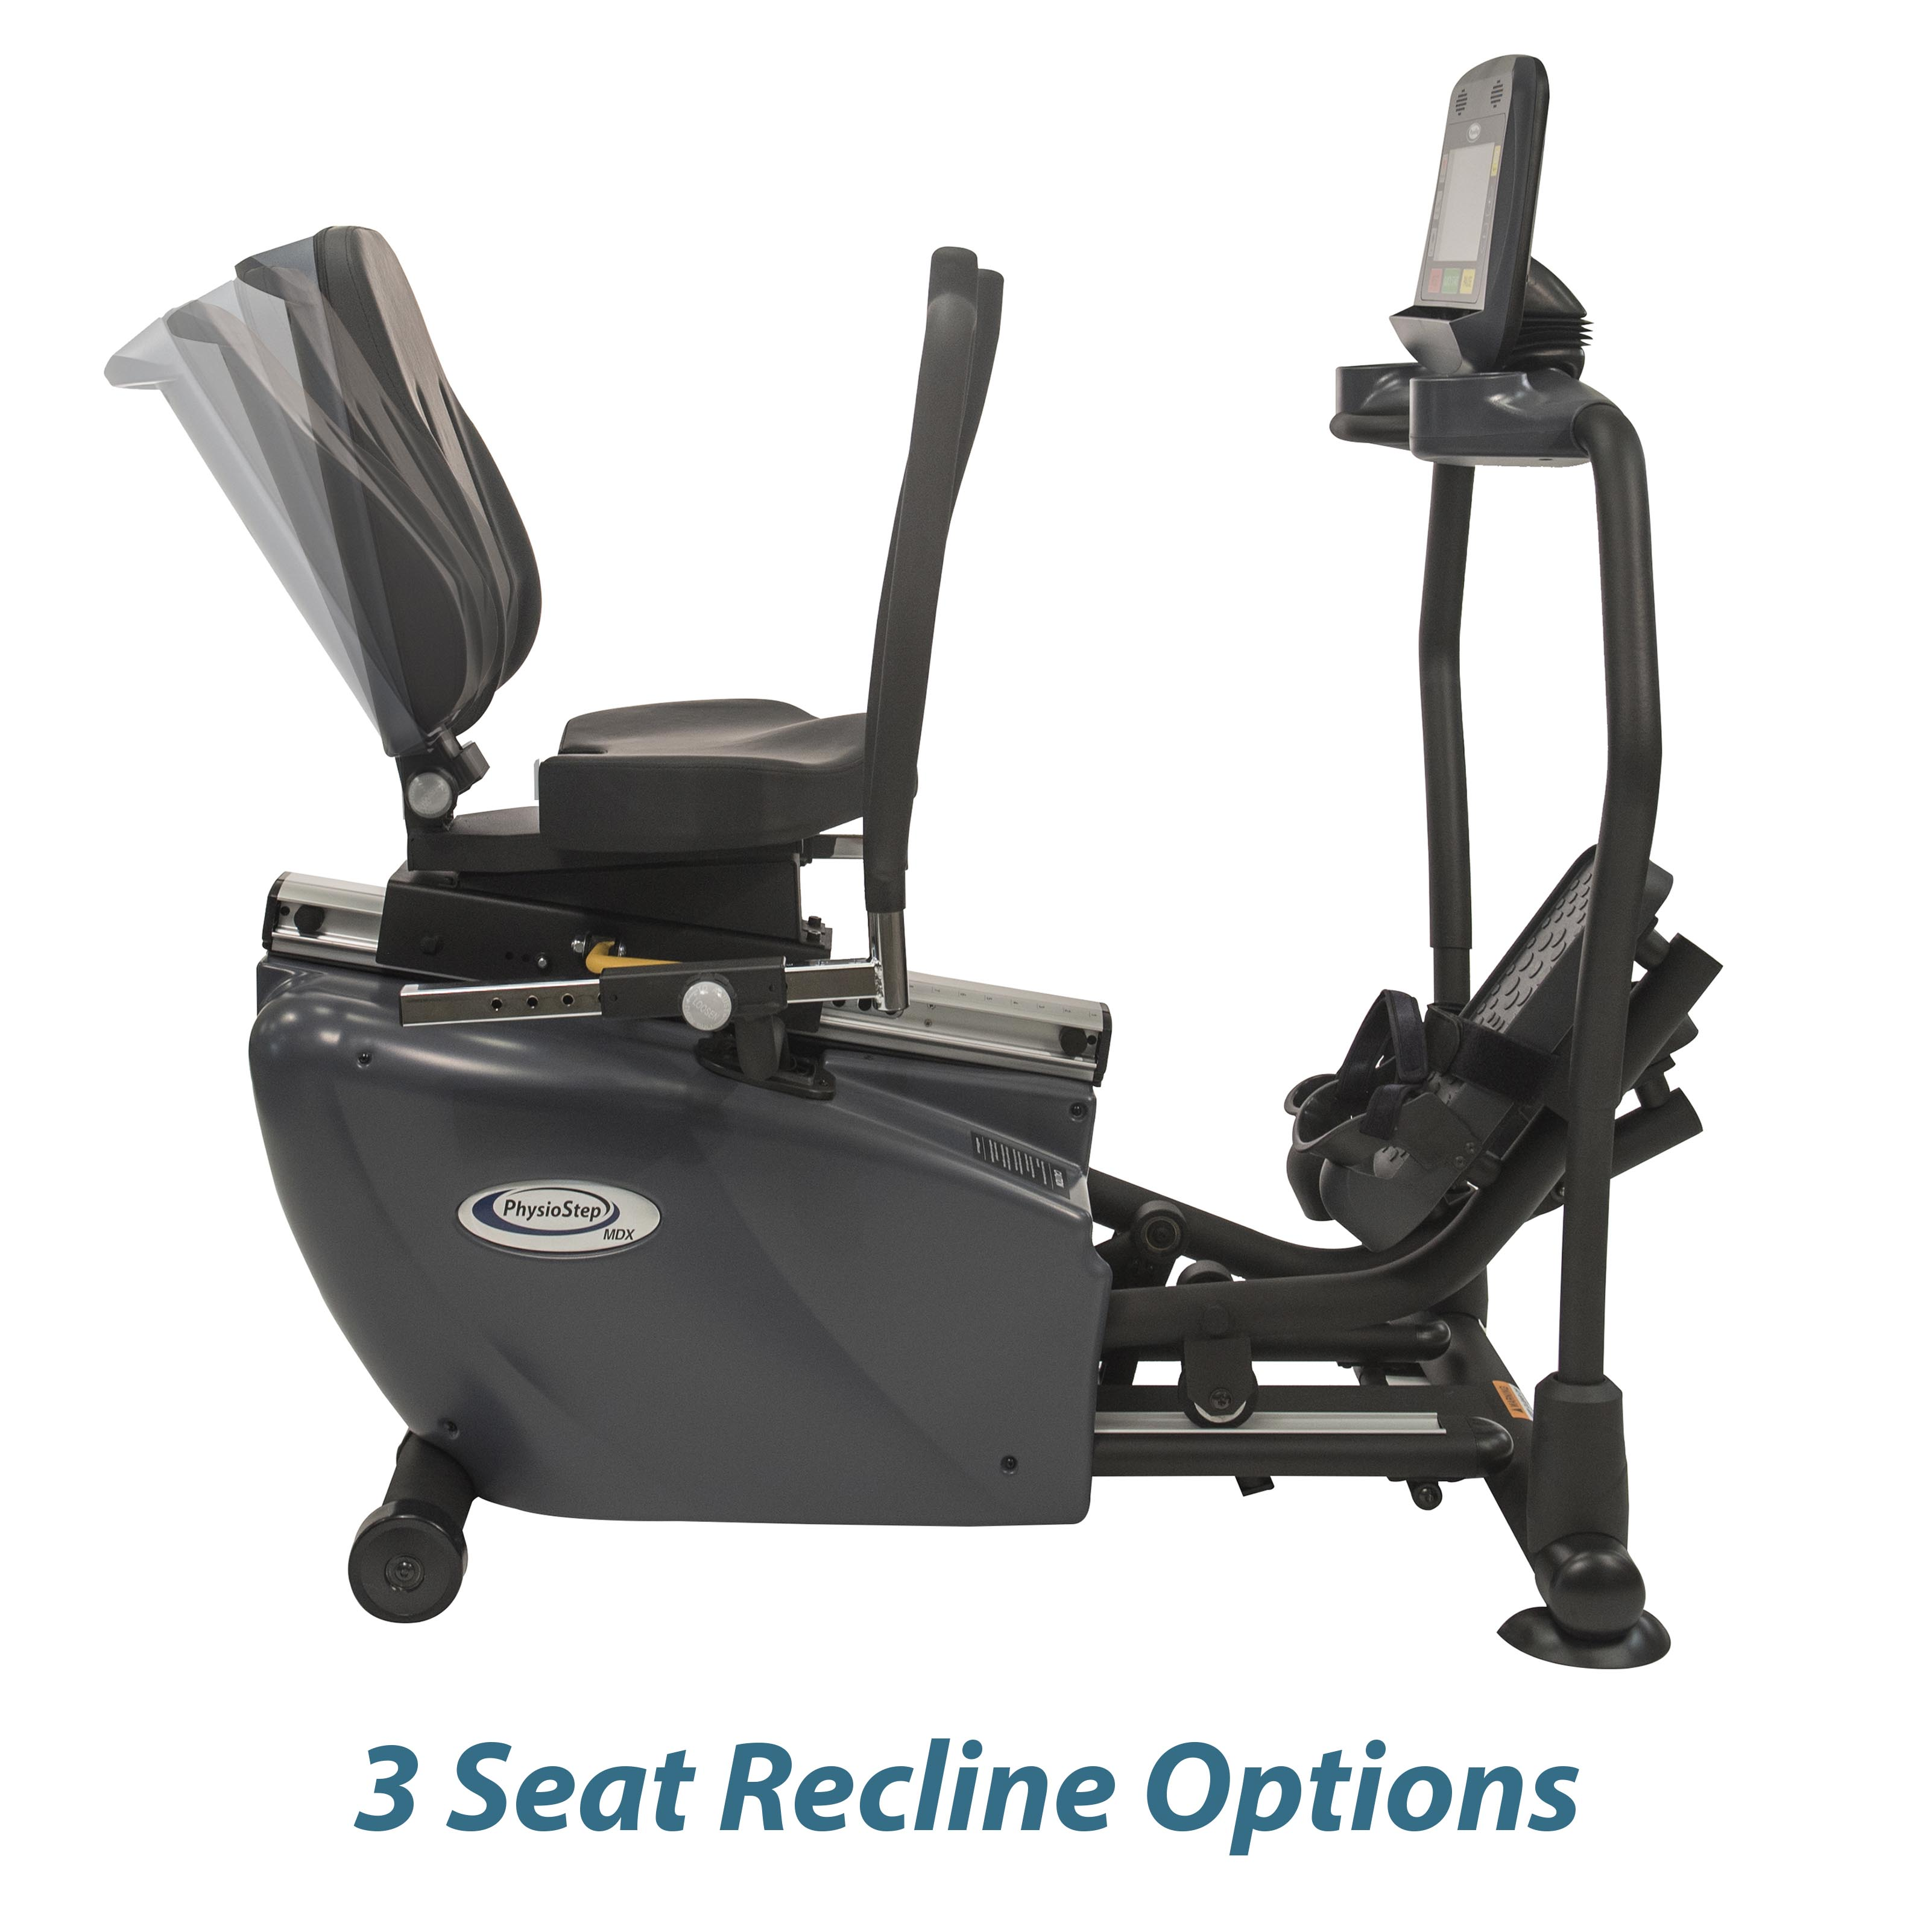 PhysioStep MDX Recumbent Elliptical Seat Recline